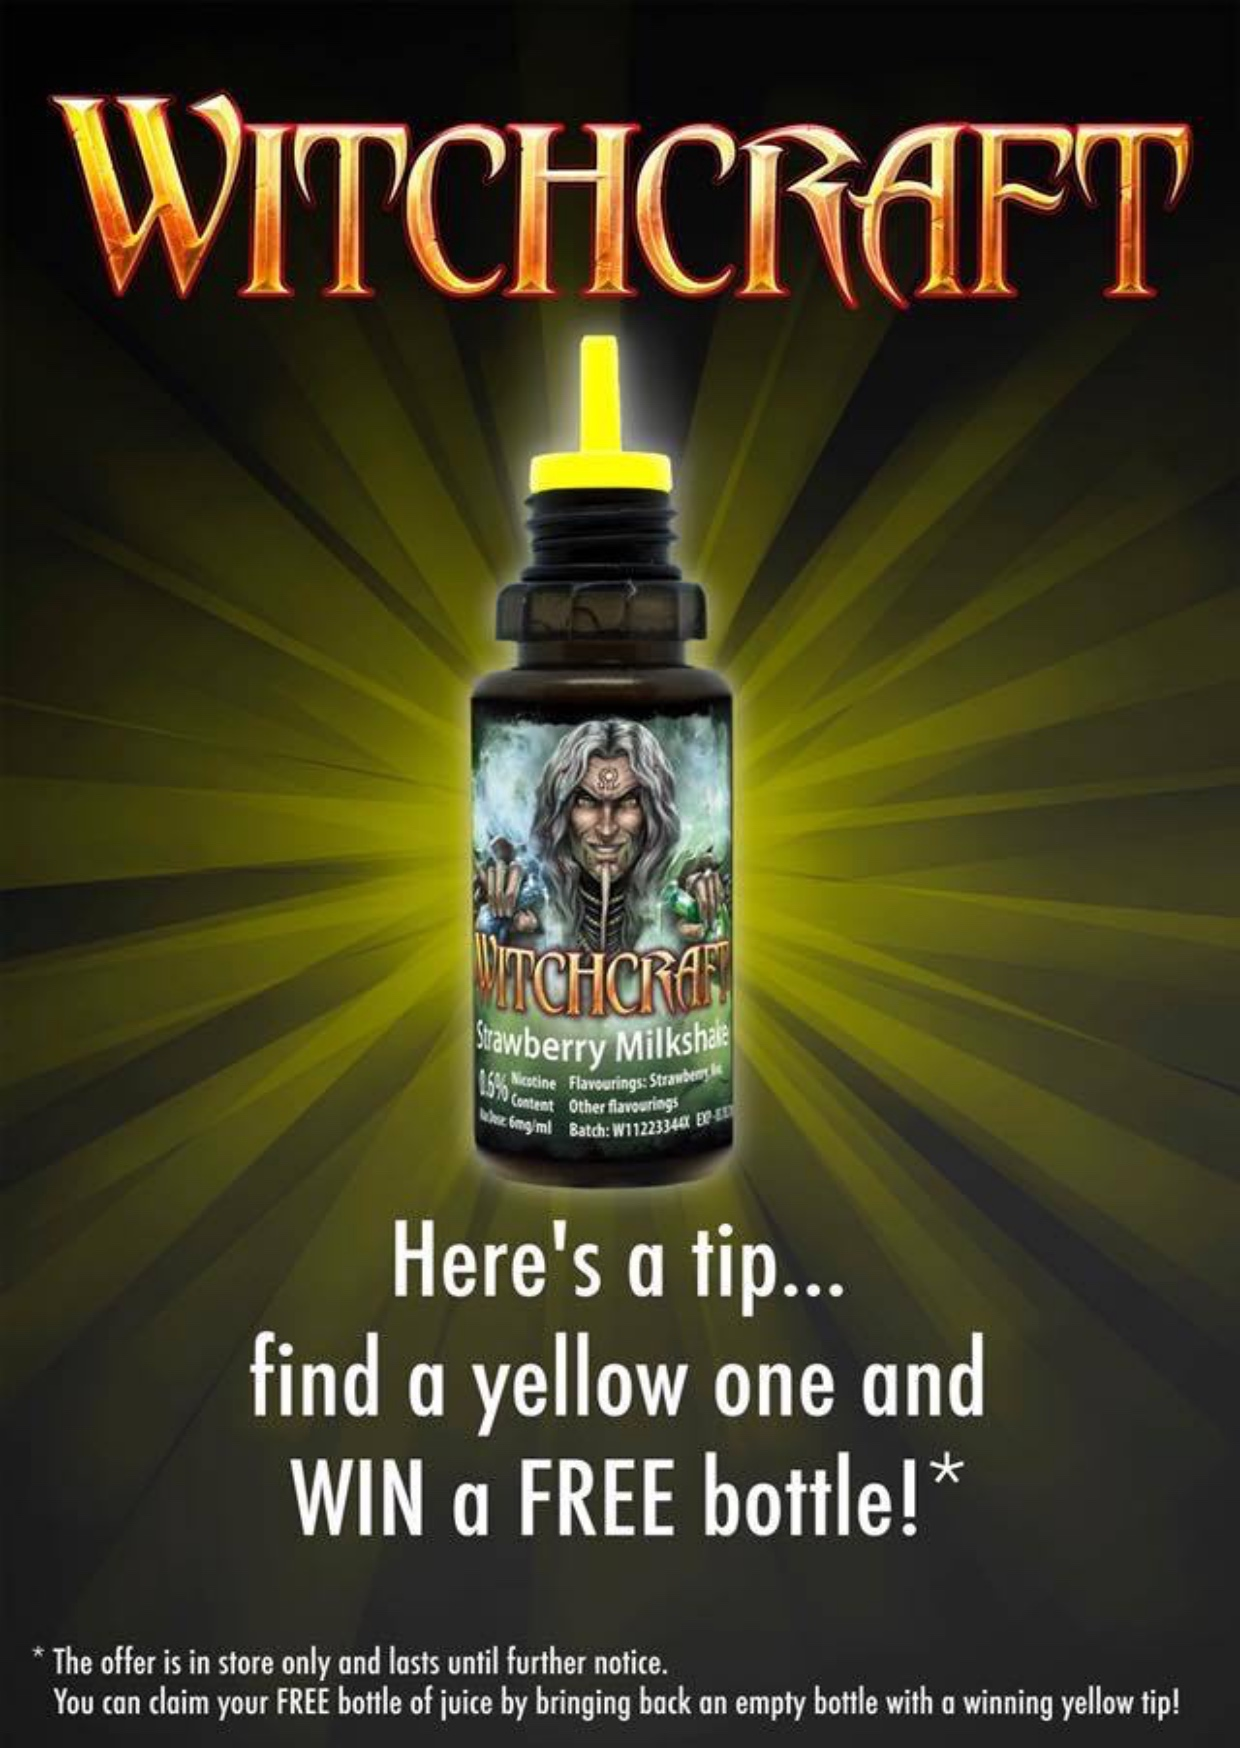 Find a yellow tip and win